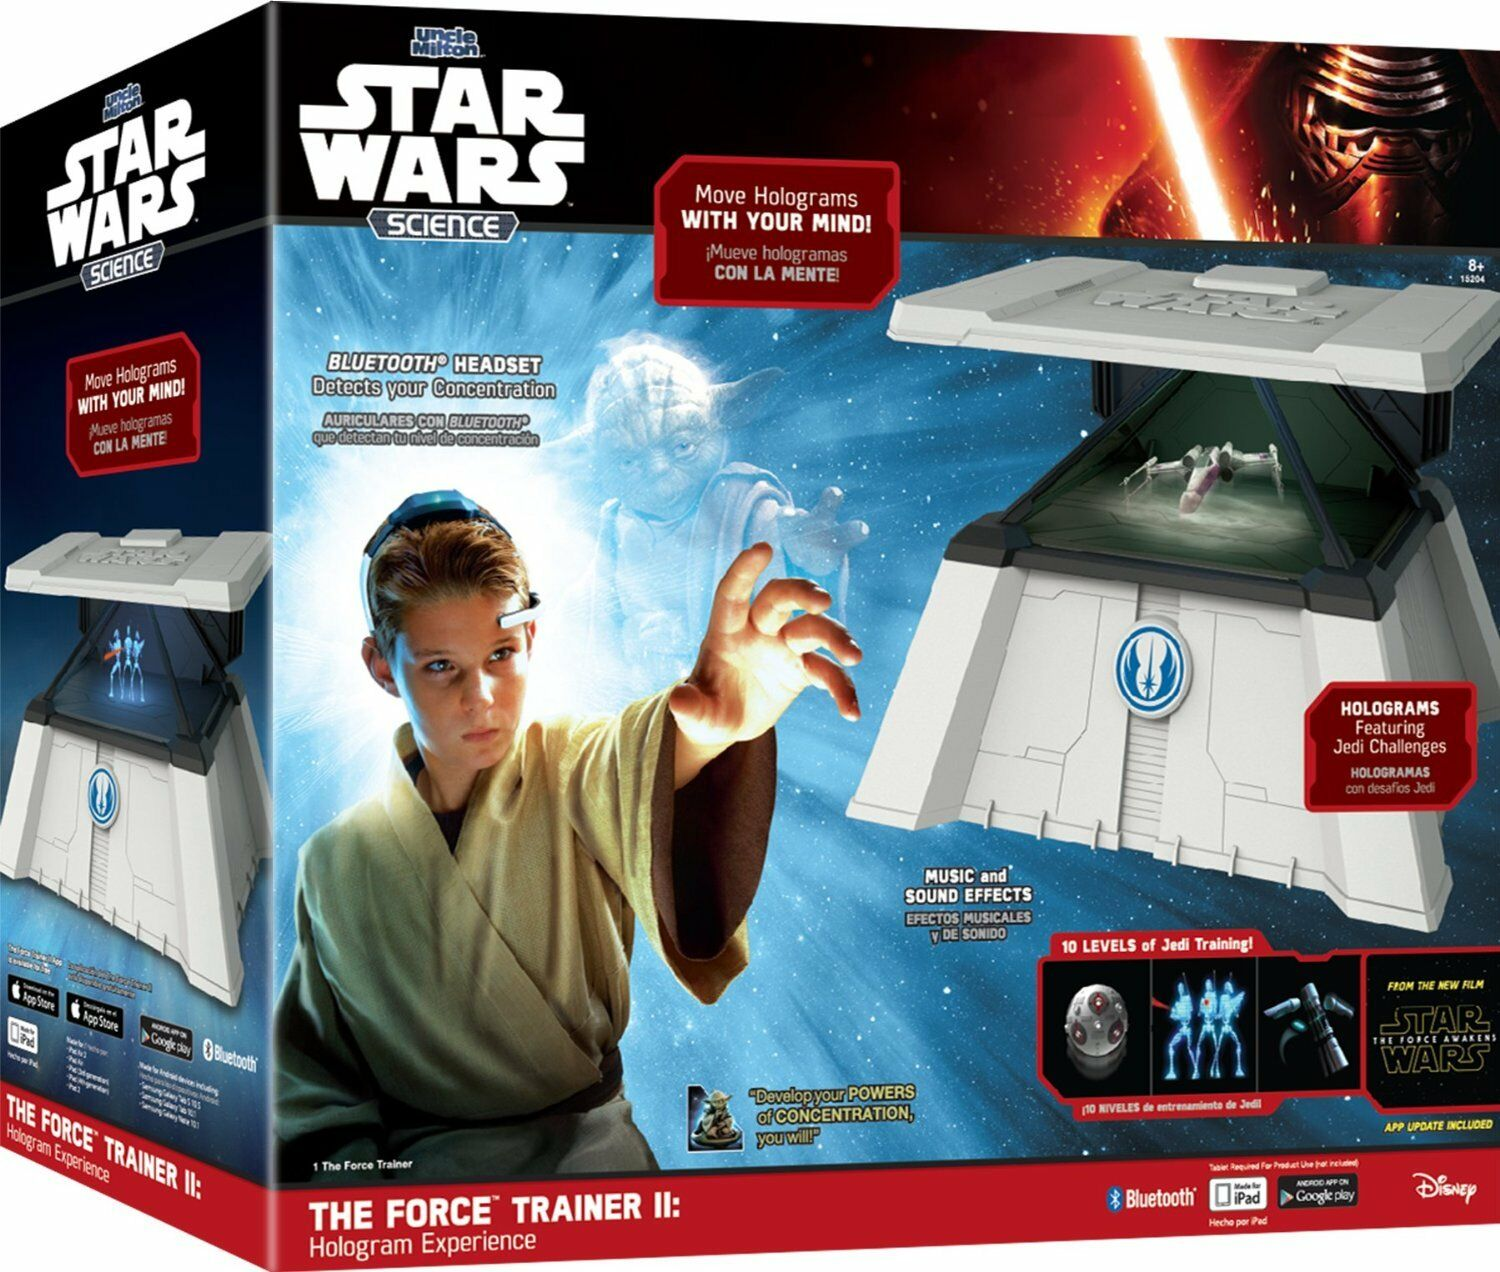 Star Wars Science 15204 The Force Trainer II Hologram Experience Featuring Jedi